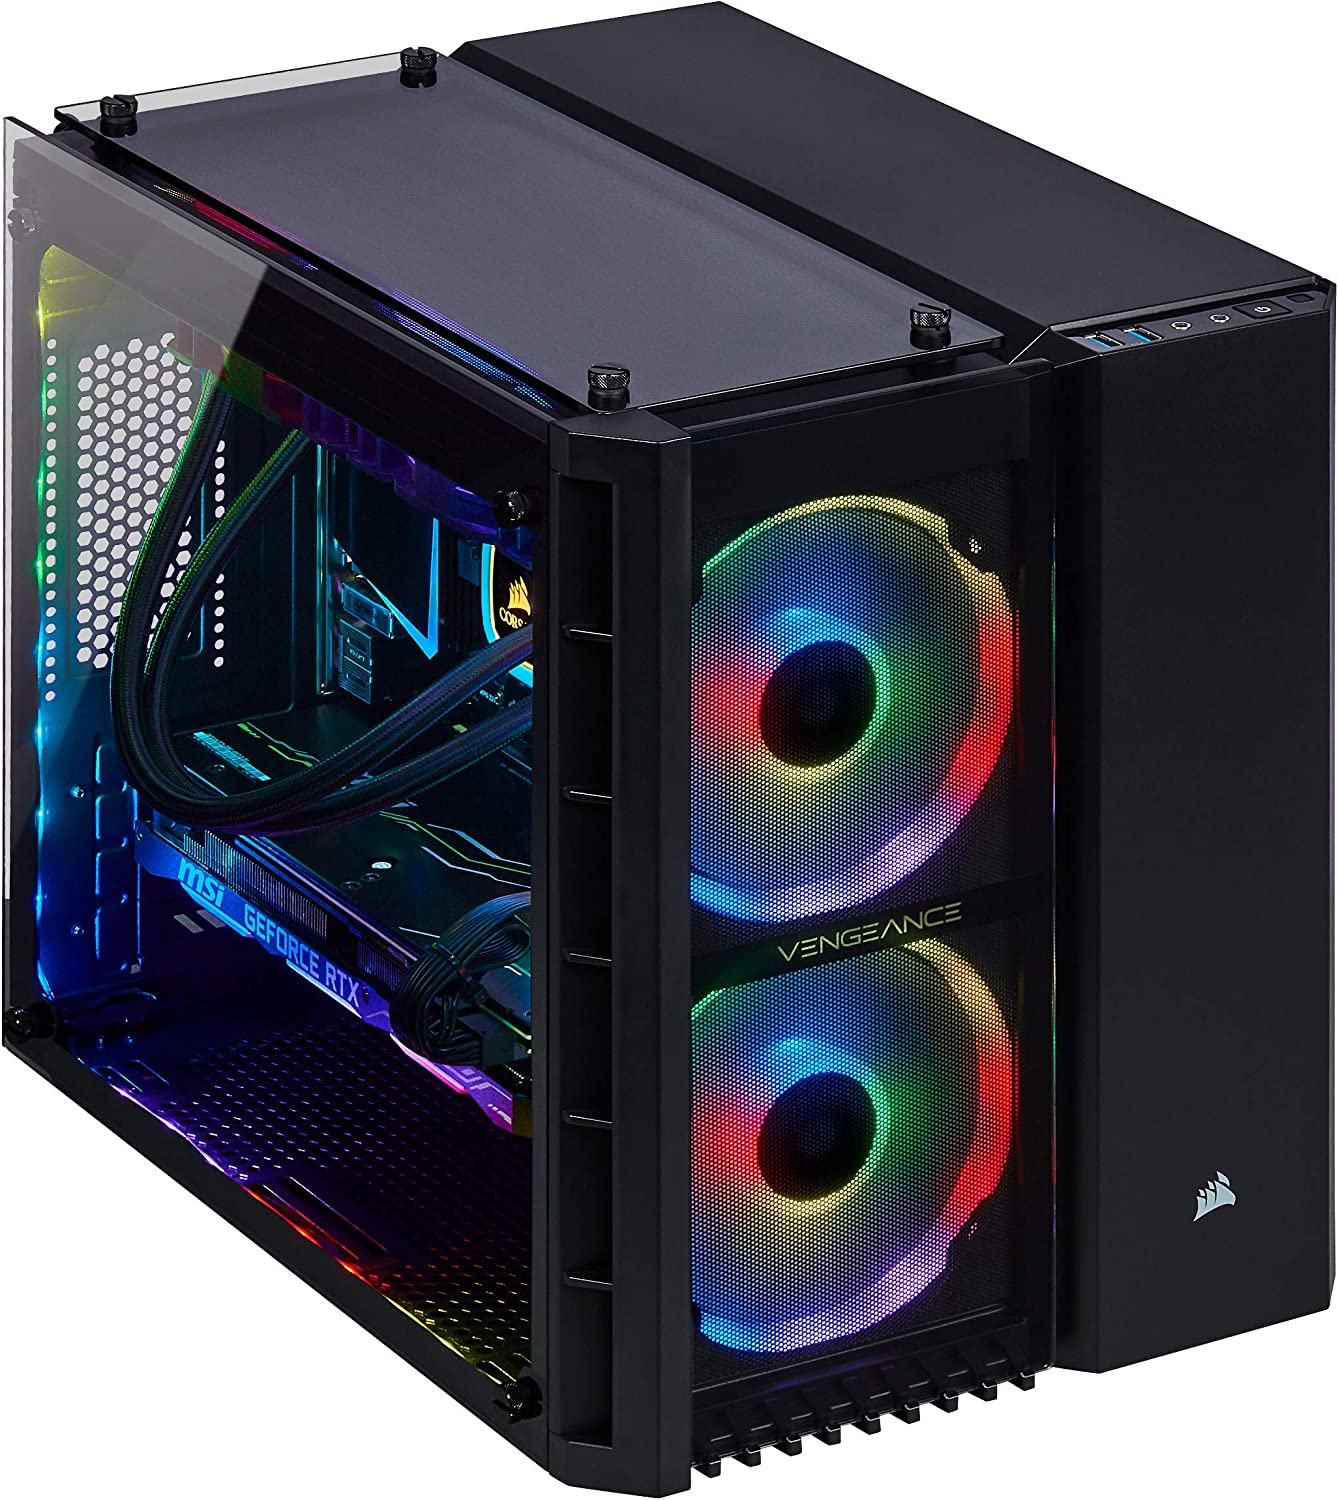 Corsair Vengeance 5182 Gaming PC, Liquid Cooled Intel Core i7-9700, NVIDIA GeForce RTX 2070 Super, 480GB M.2, 2TB HDD, 16GB DDR4, i7-9700 - 16GB DRAM